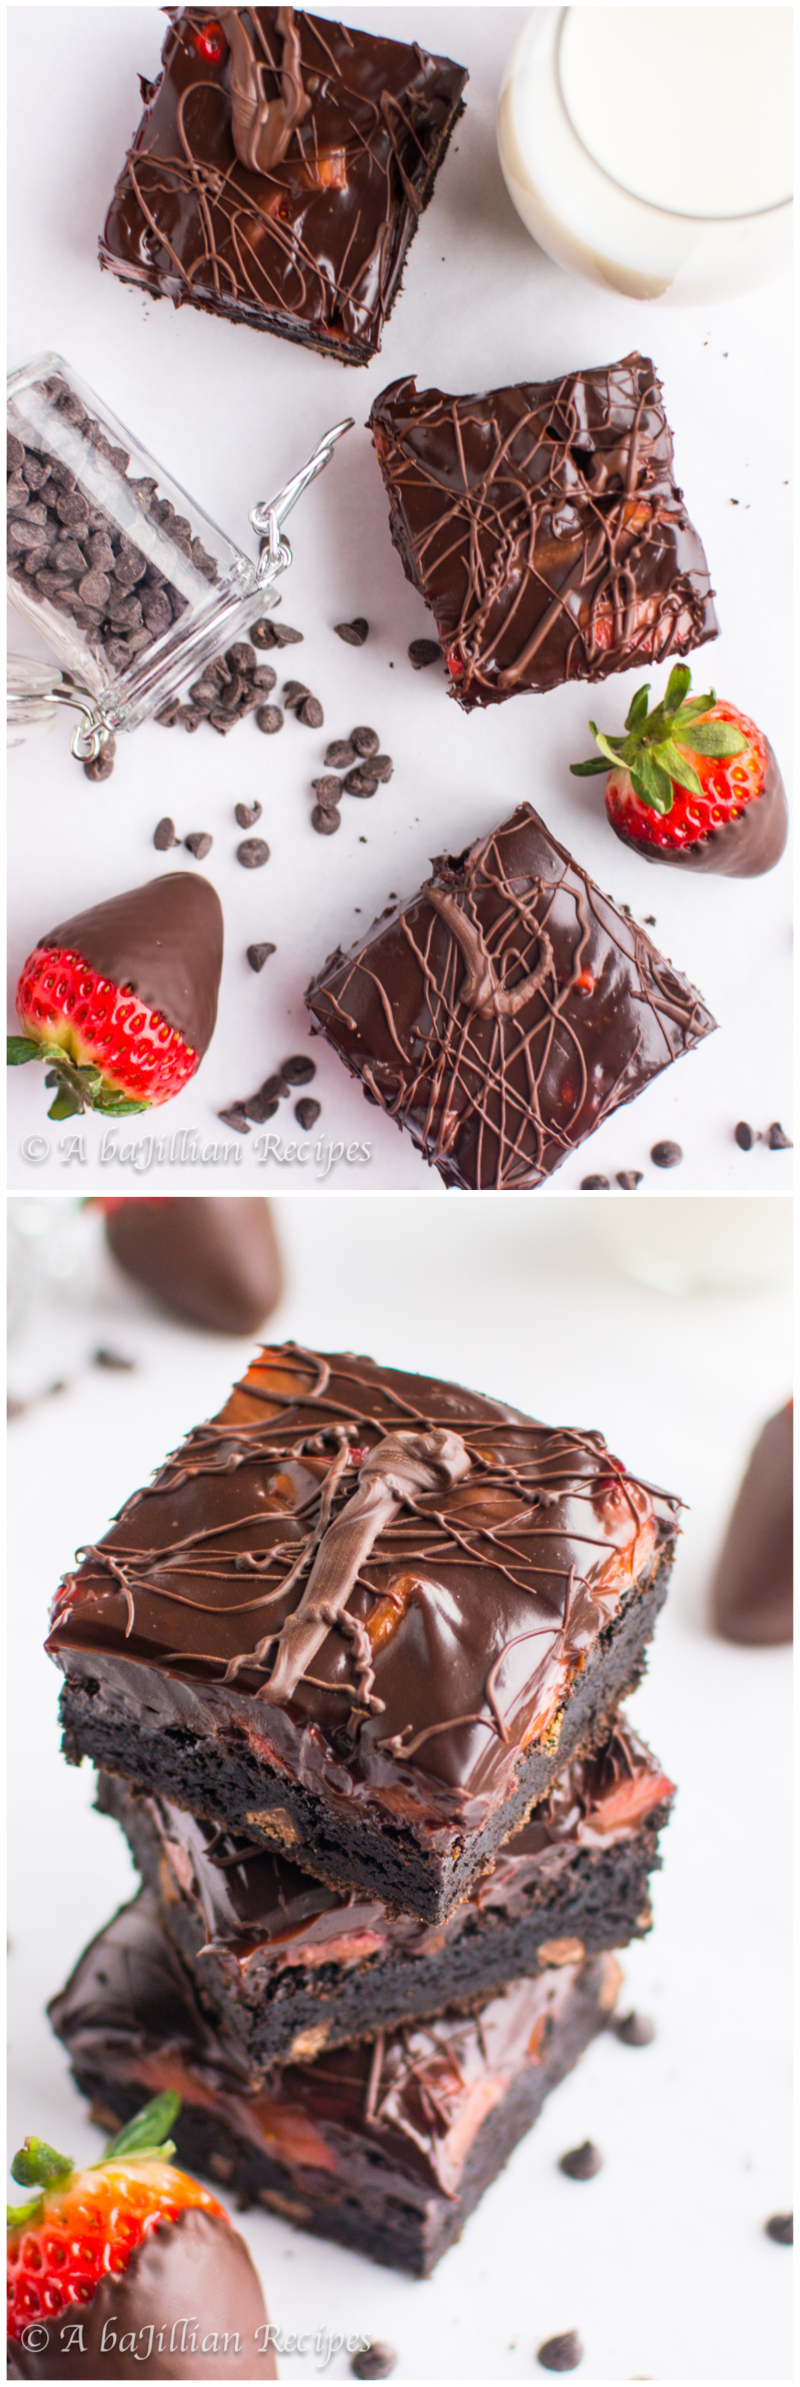 Chocolate-Covered Strawberry Brownies   A baJillian Recipes3